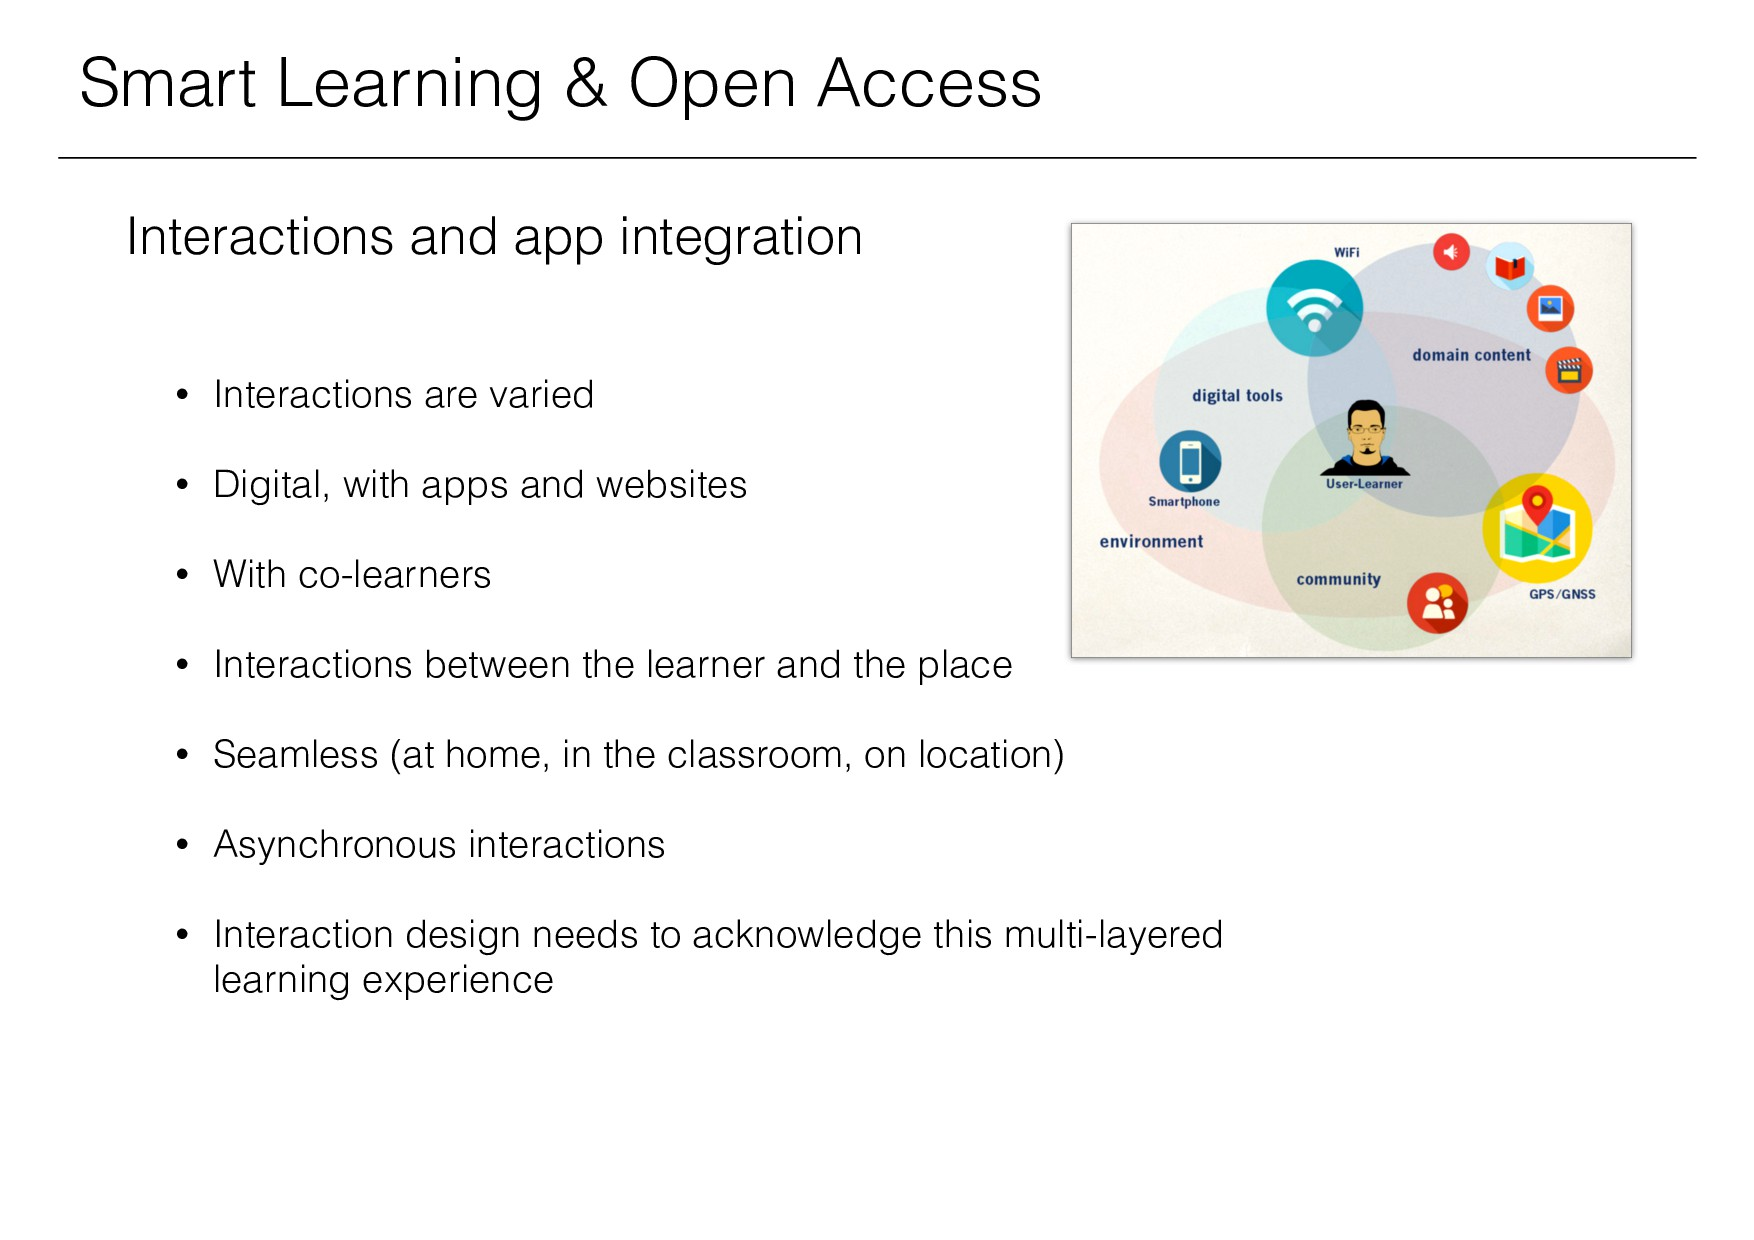 Smart Learning & Open Access Interactions and a...